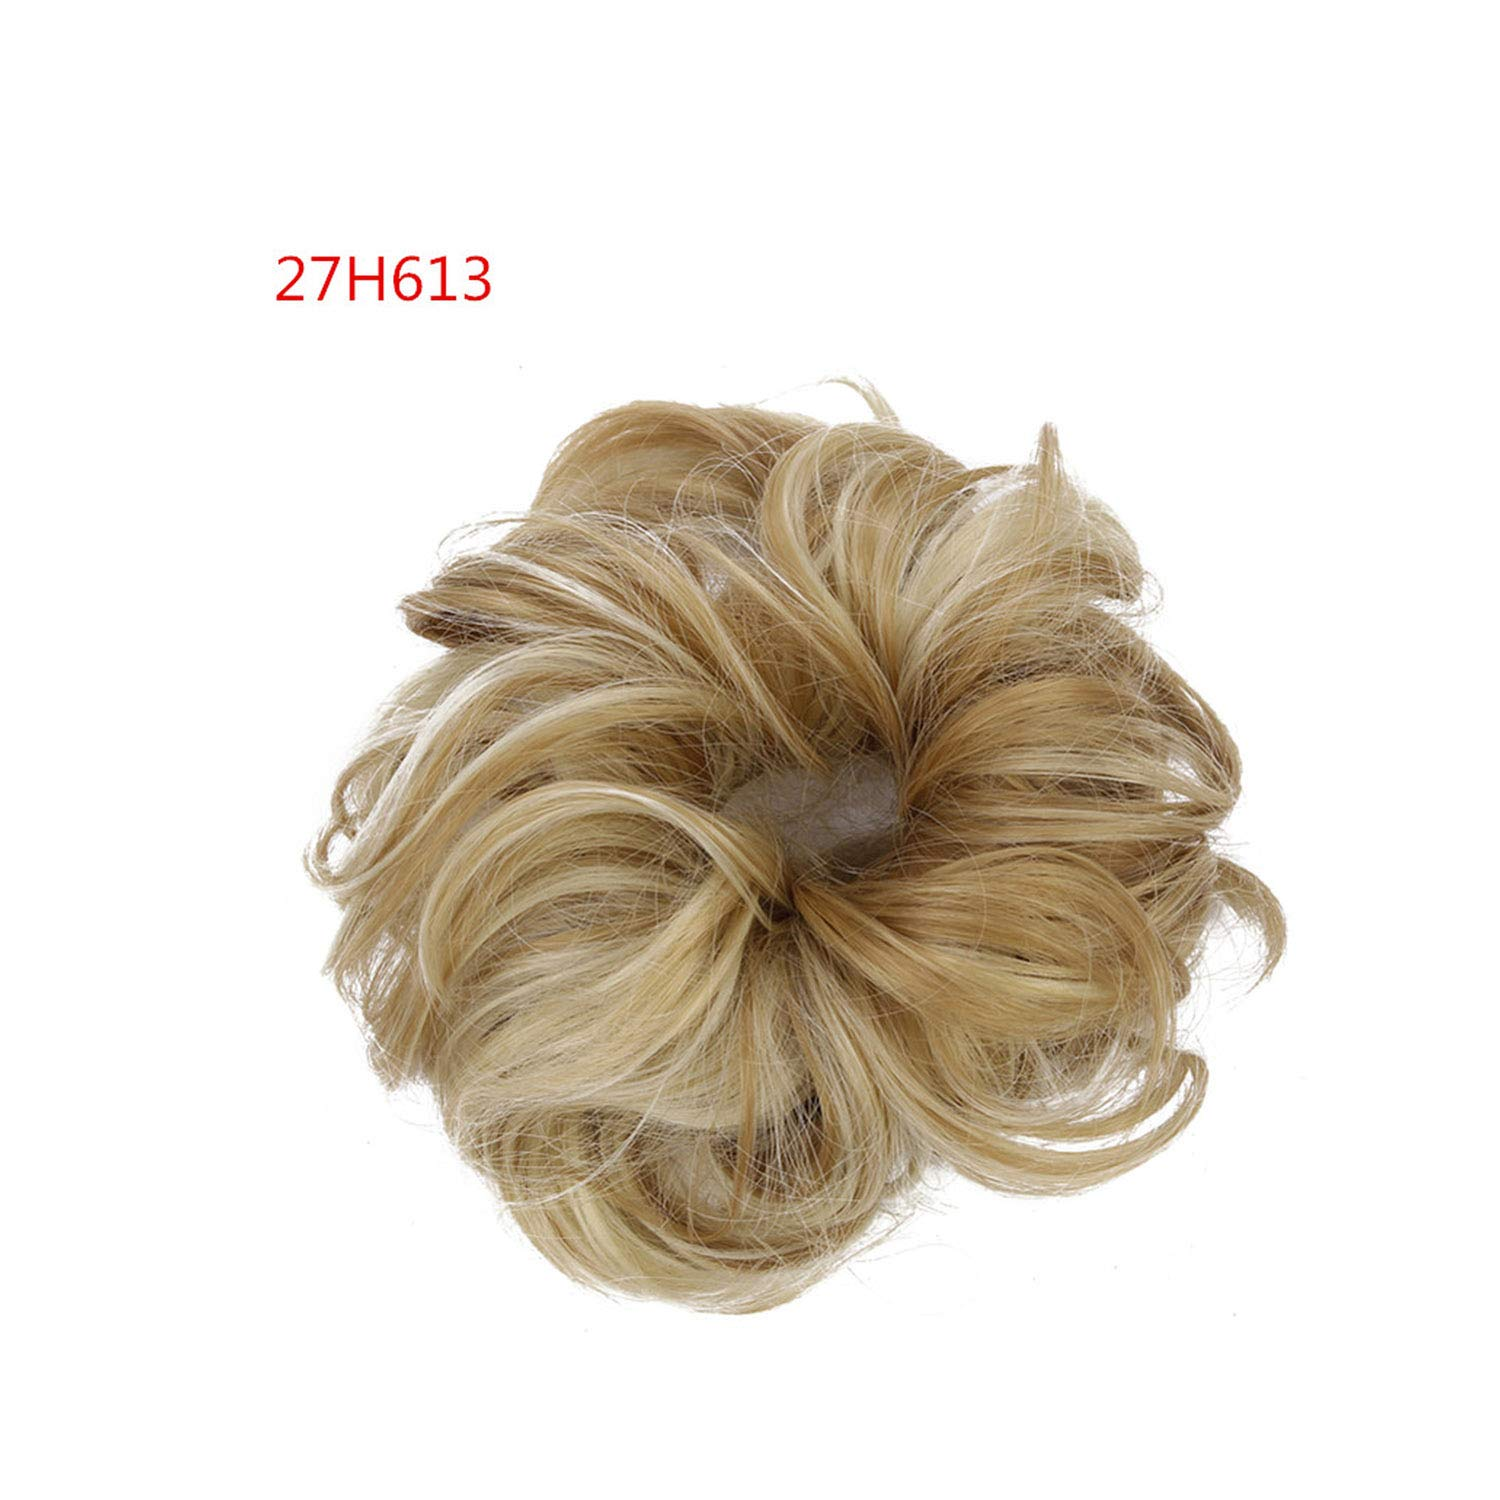 Synthetic Fake Hair Bun Chignons Hairpiece For Women Elastic Scrunchies Hair Piece Bun Hair Tail Updo Afro Ponytail Accessory,27H613 by Crystal Grass-Hair